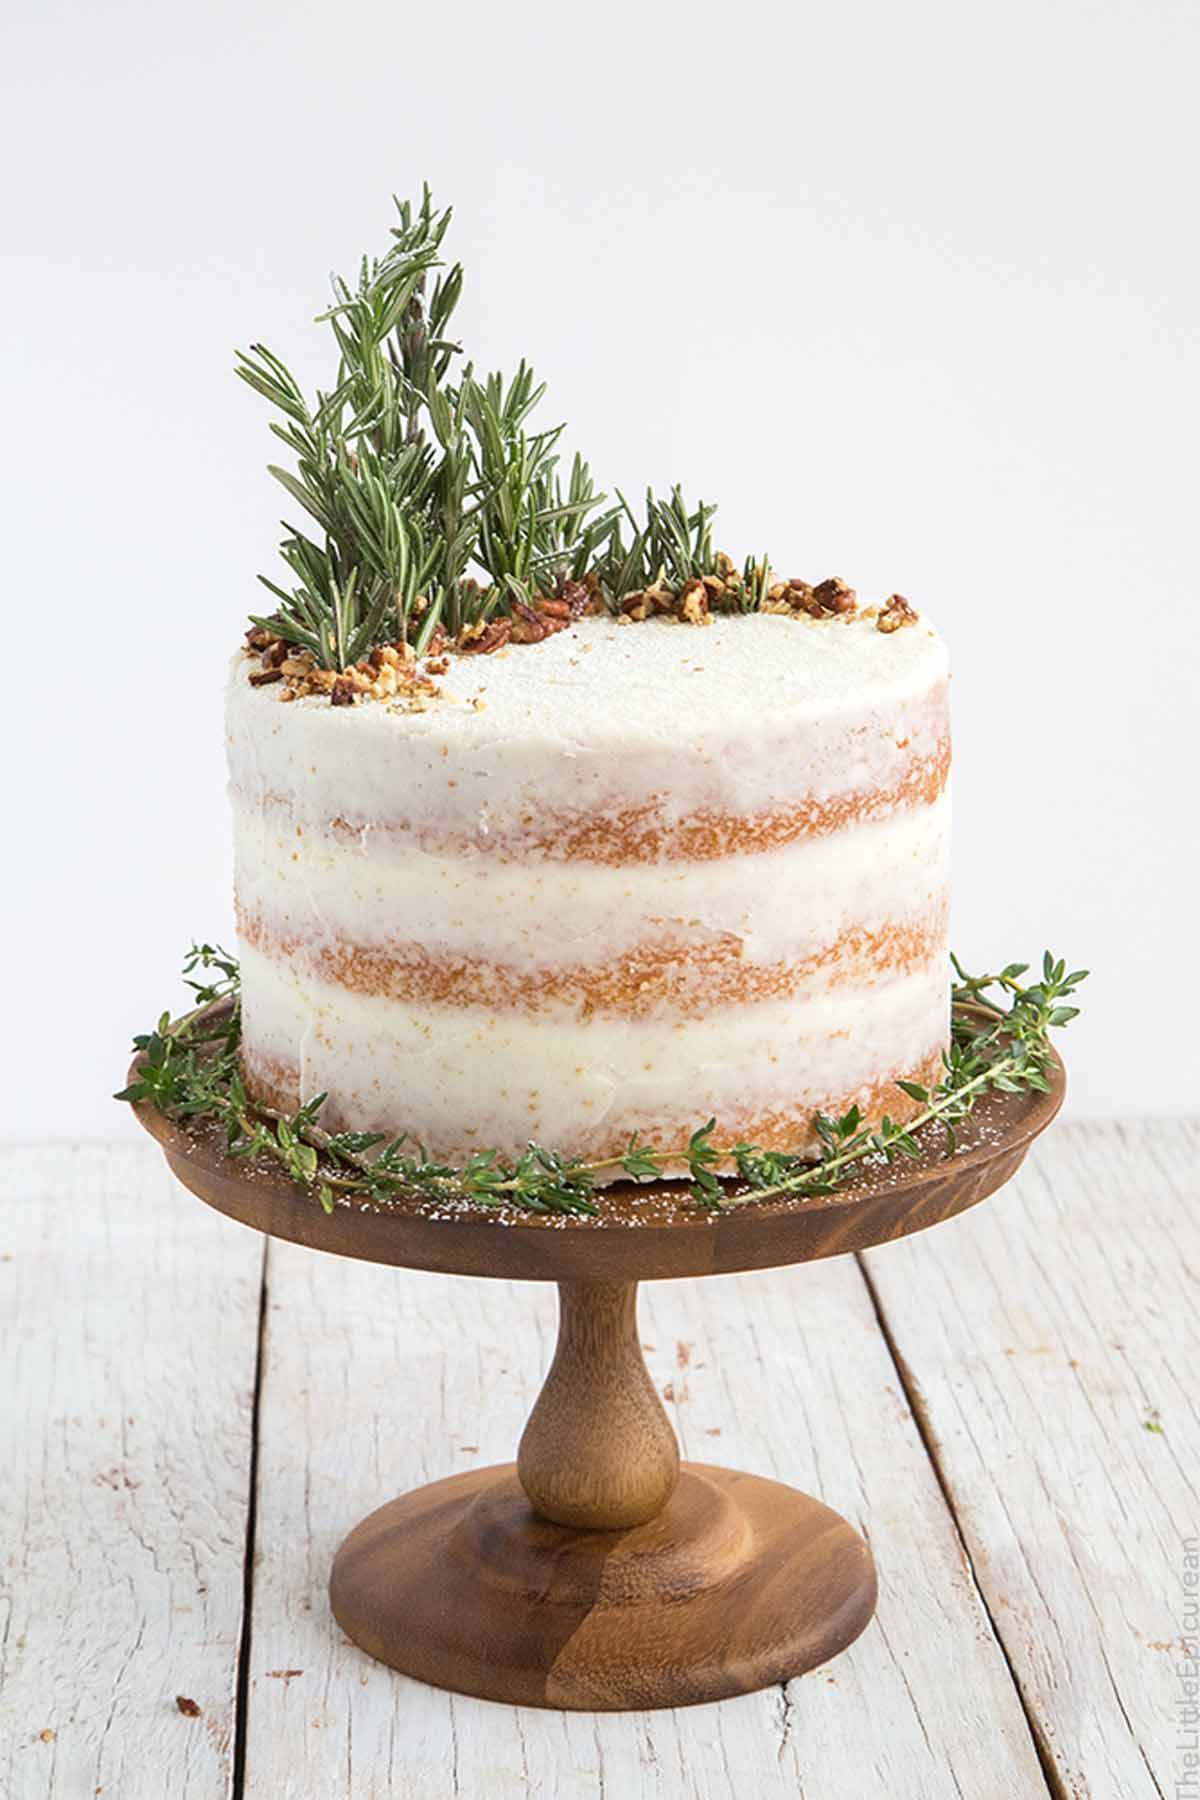 14 Best DIY Naked Cake Recipes - How to Make a Naked Cake